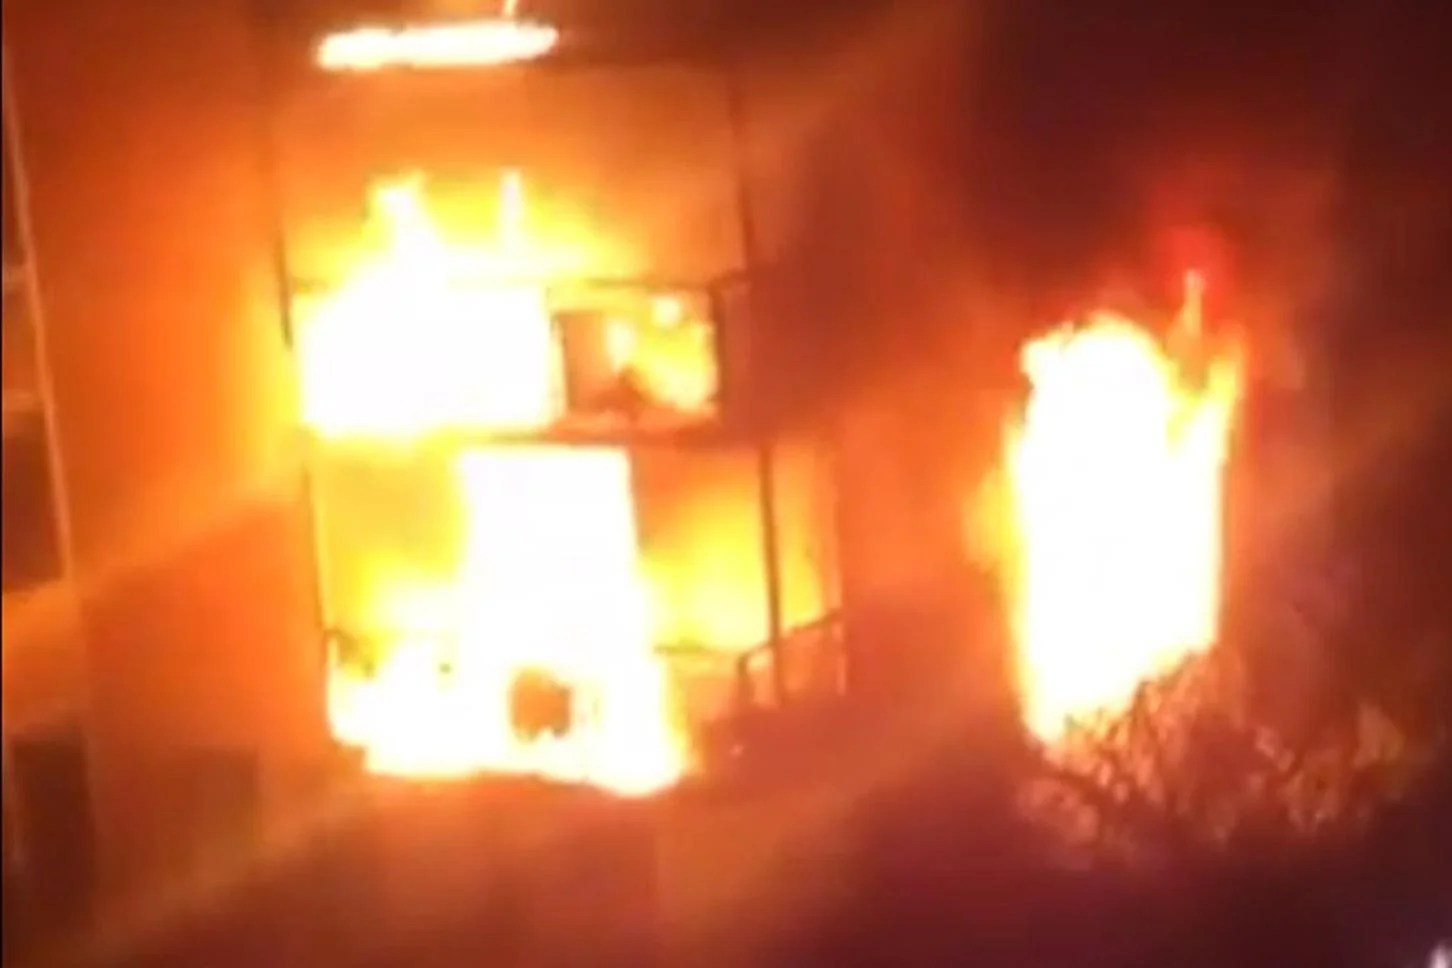 Stratford Fire Terrifying Moment Huge Blaze Rips Through